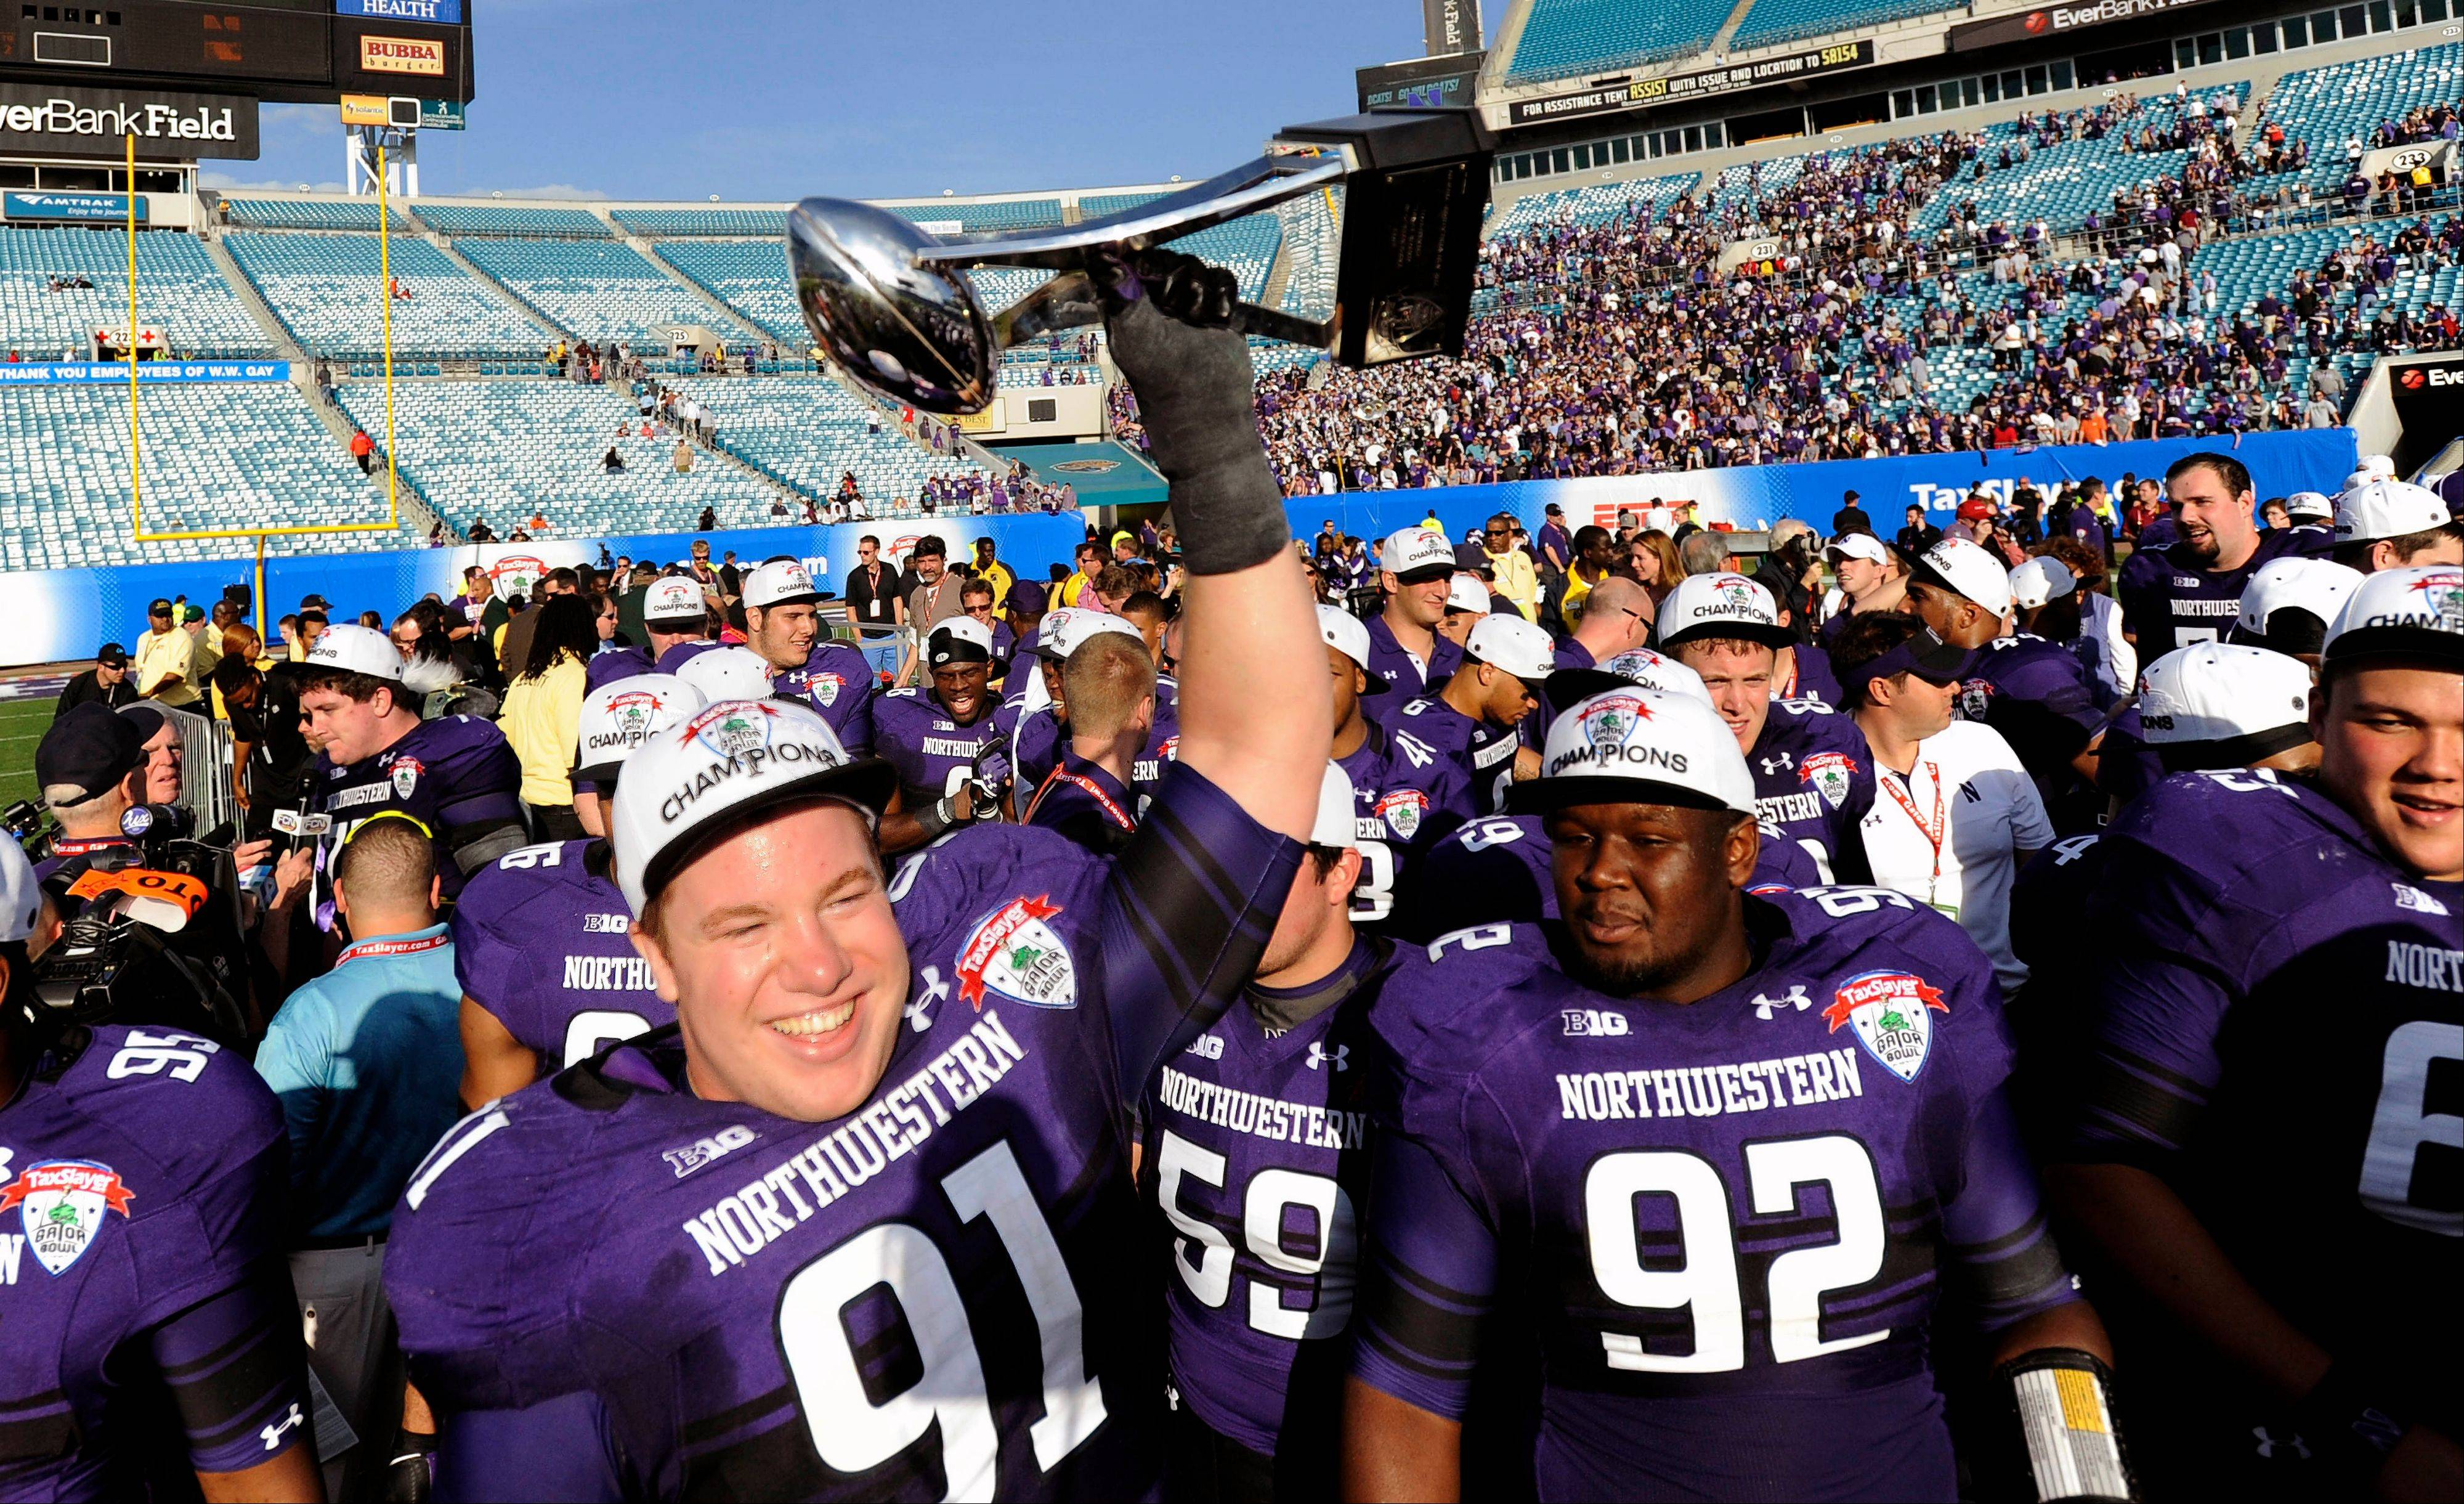 Defensive lineman Brian Arnfelt hoists the trophy after Northwestern�s 34-20 win over Mississippi State in the Gator Bowl on Jan. 1 in Jacksonville, Fla. With five straight bowl seasons and that elusive victory in their pocket, the Wildcats believe even better days are coming.